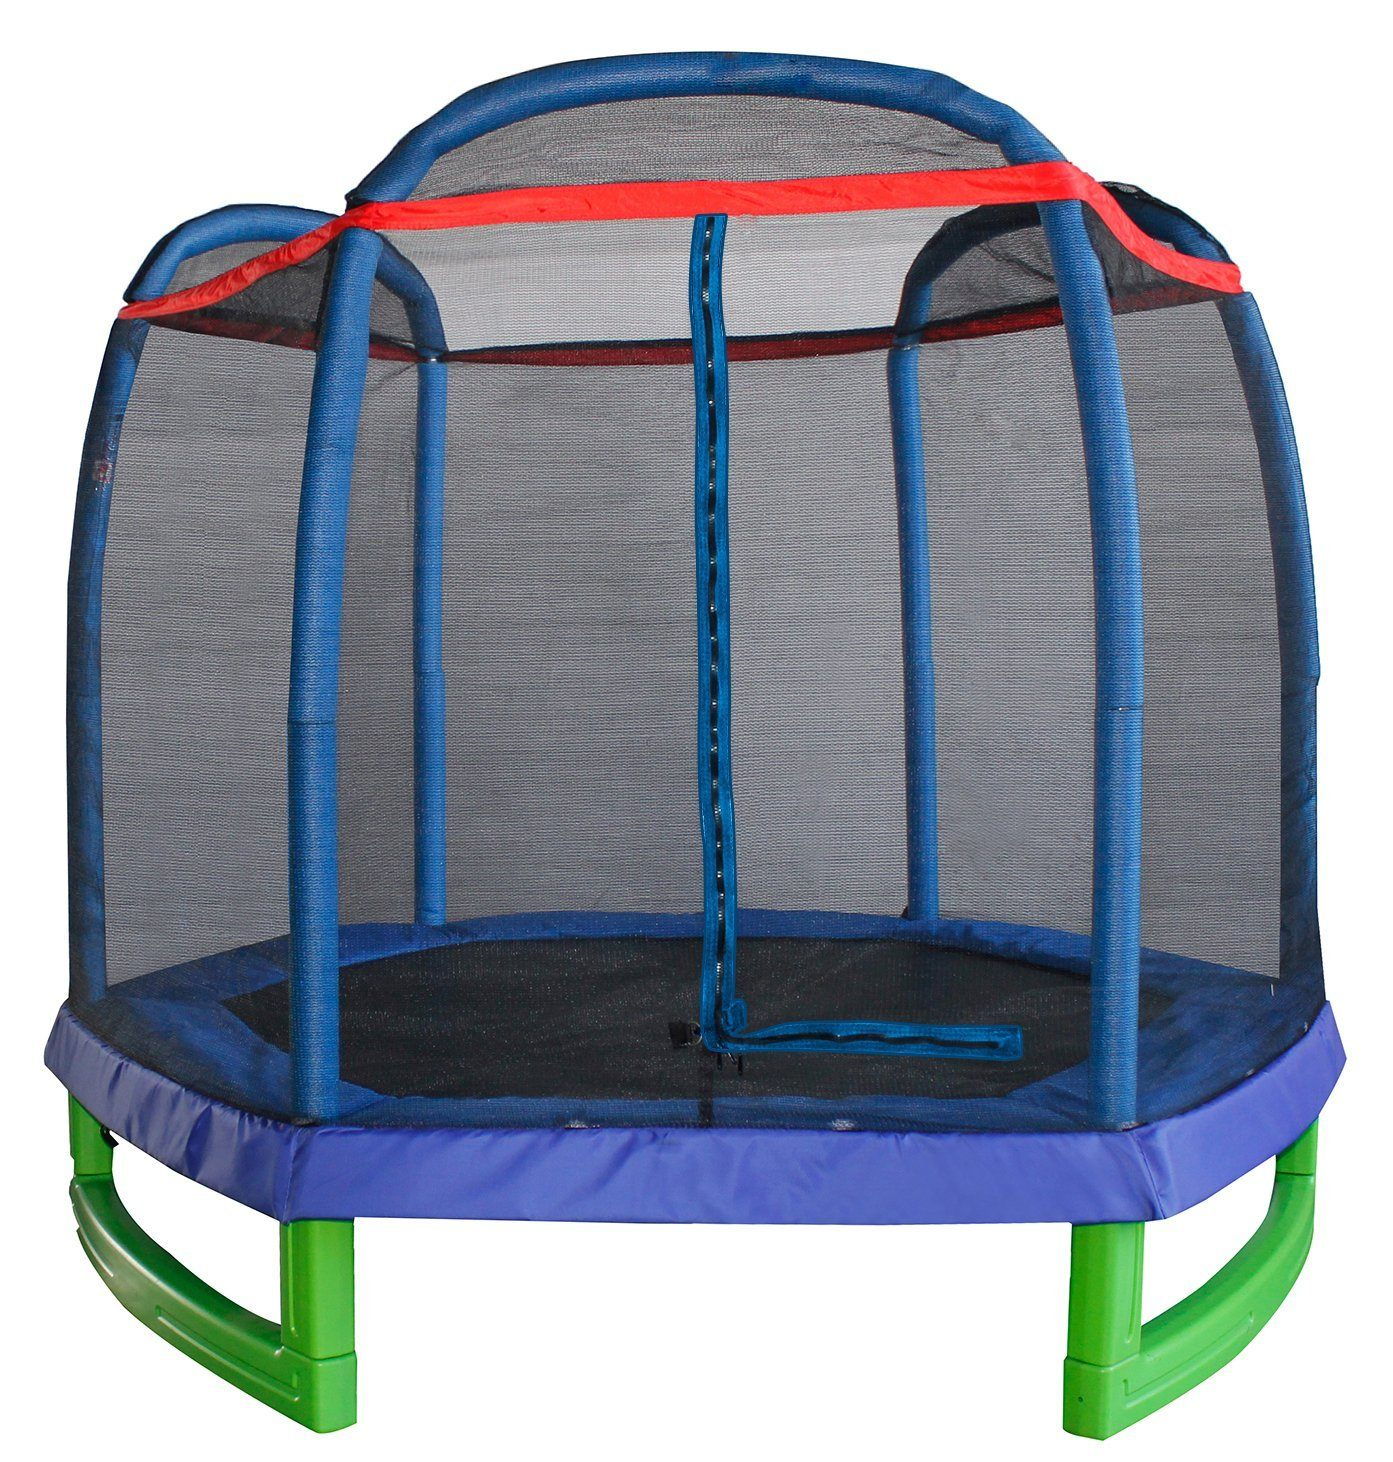 merax-7-foot-kids-trampoline-and-enclosure-set